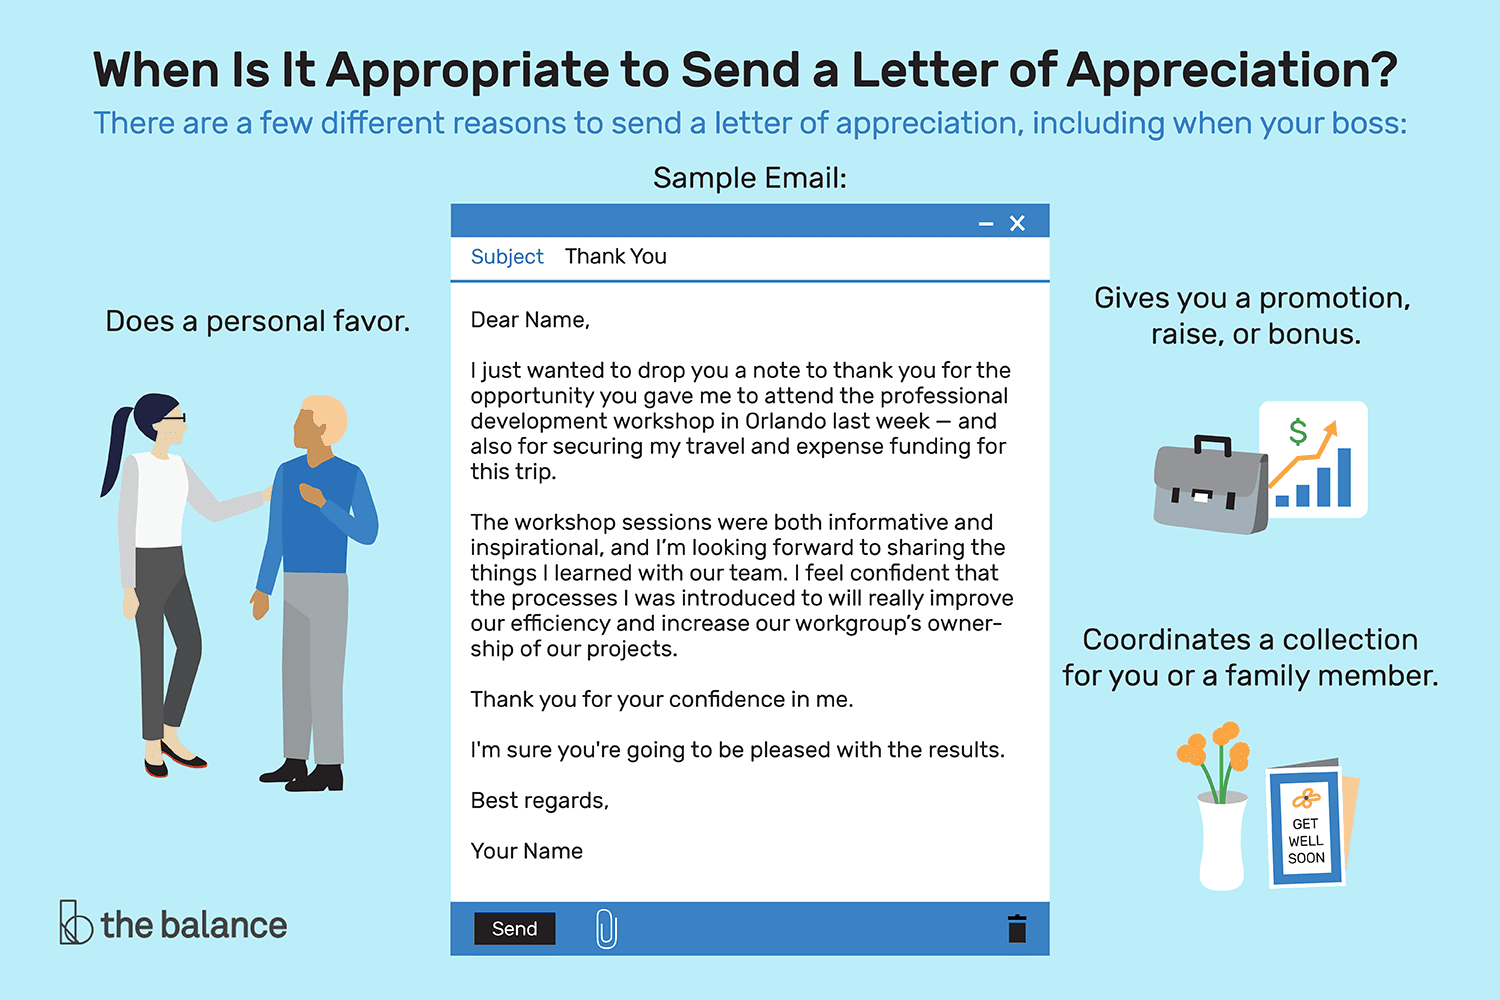 Sending A Letter Of Appreciation